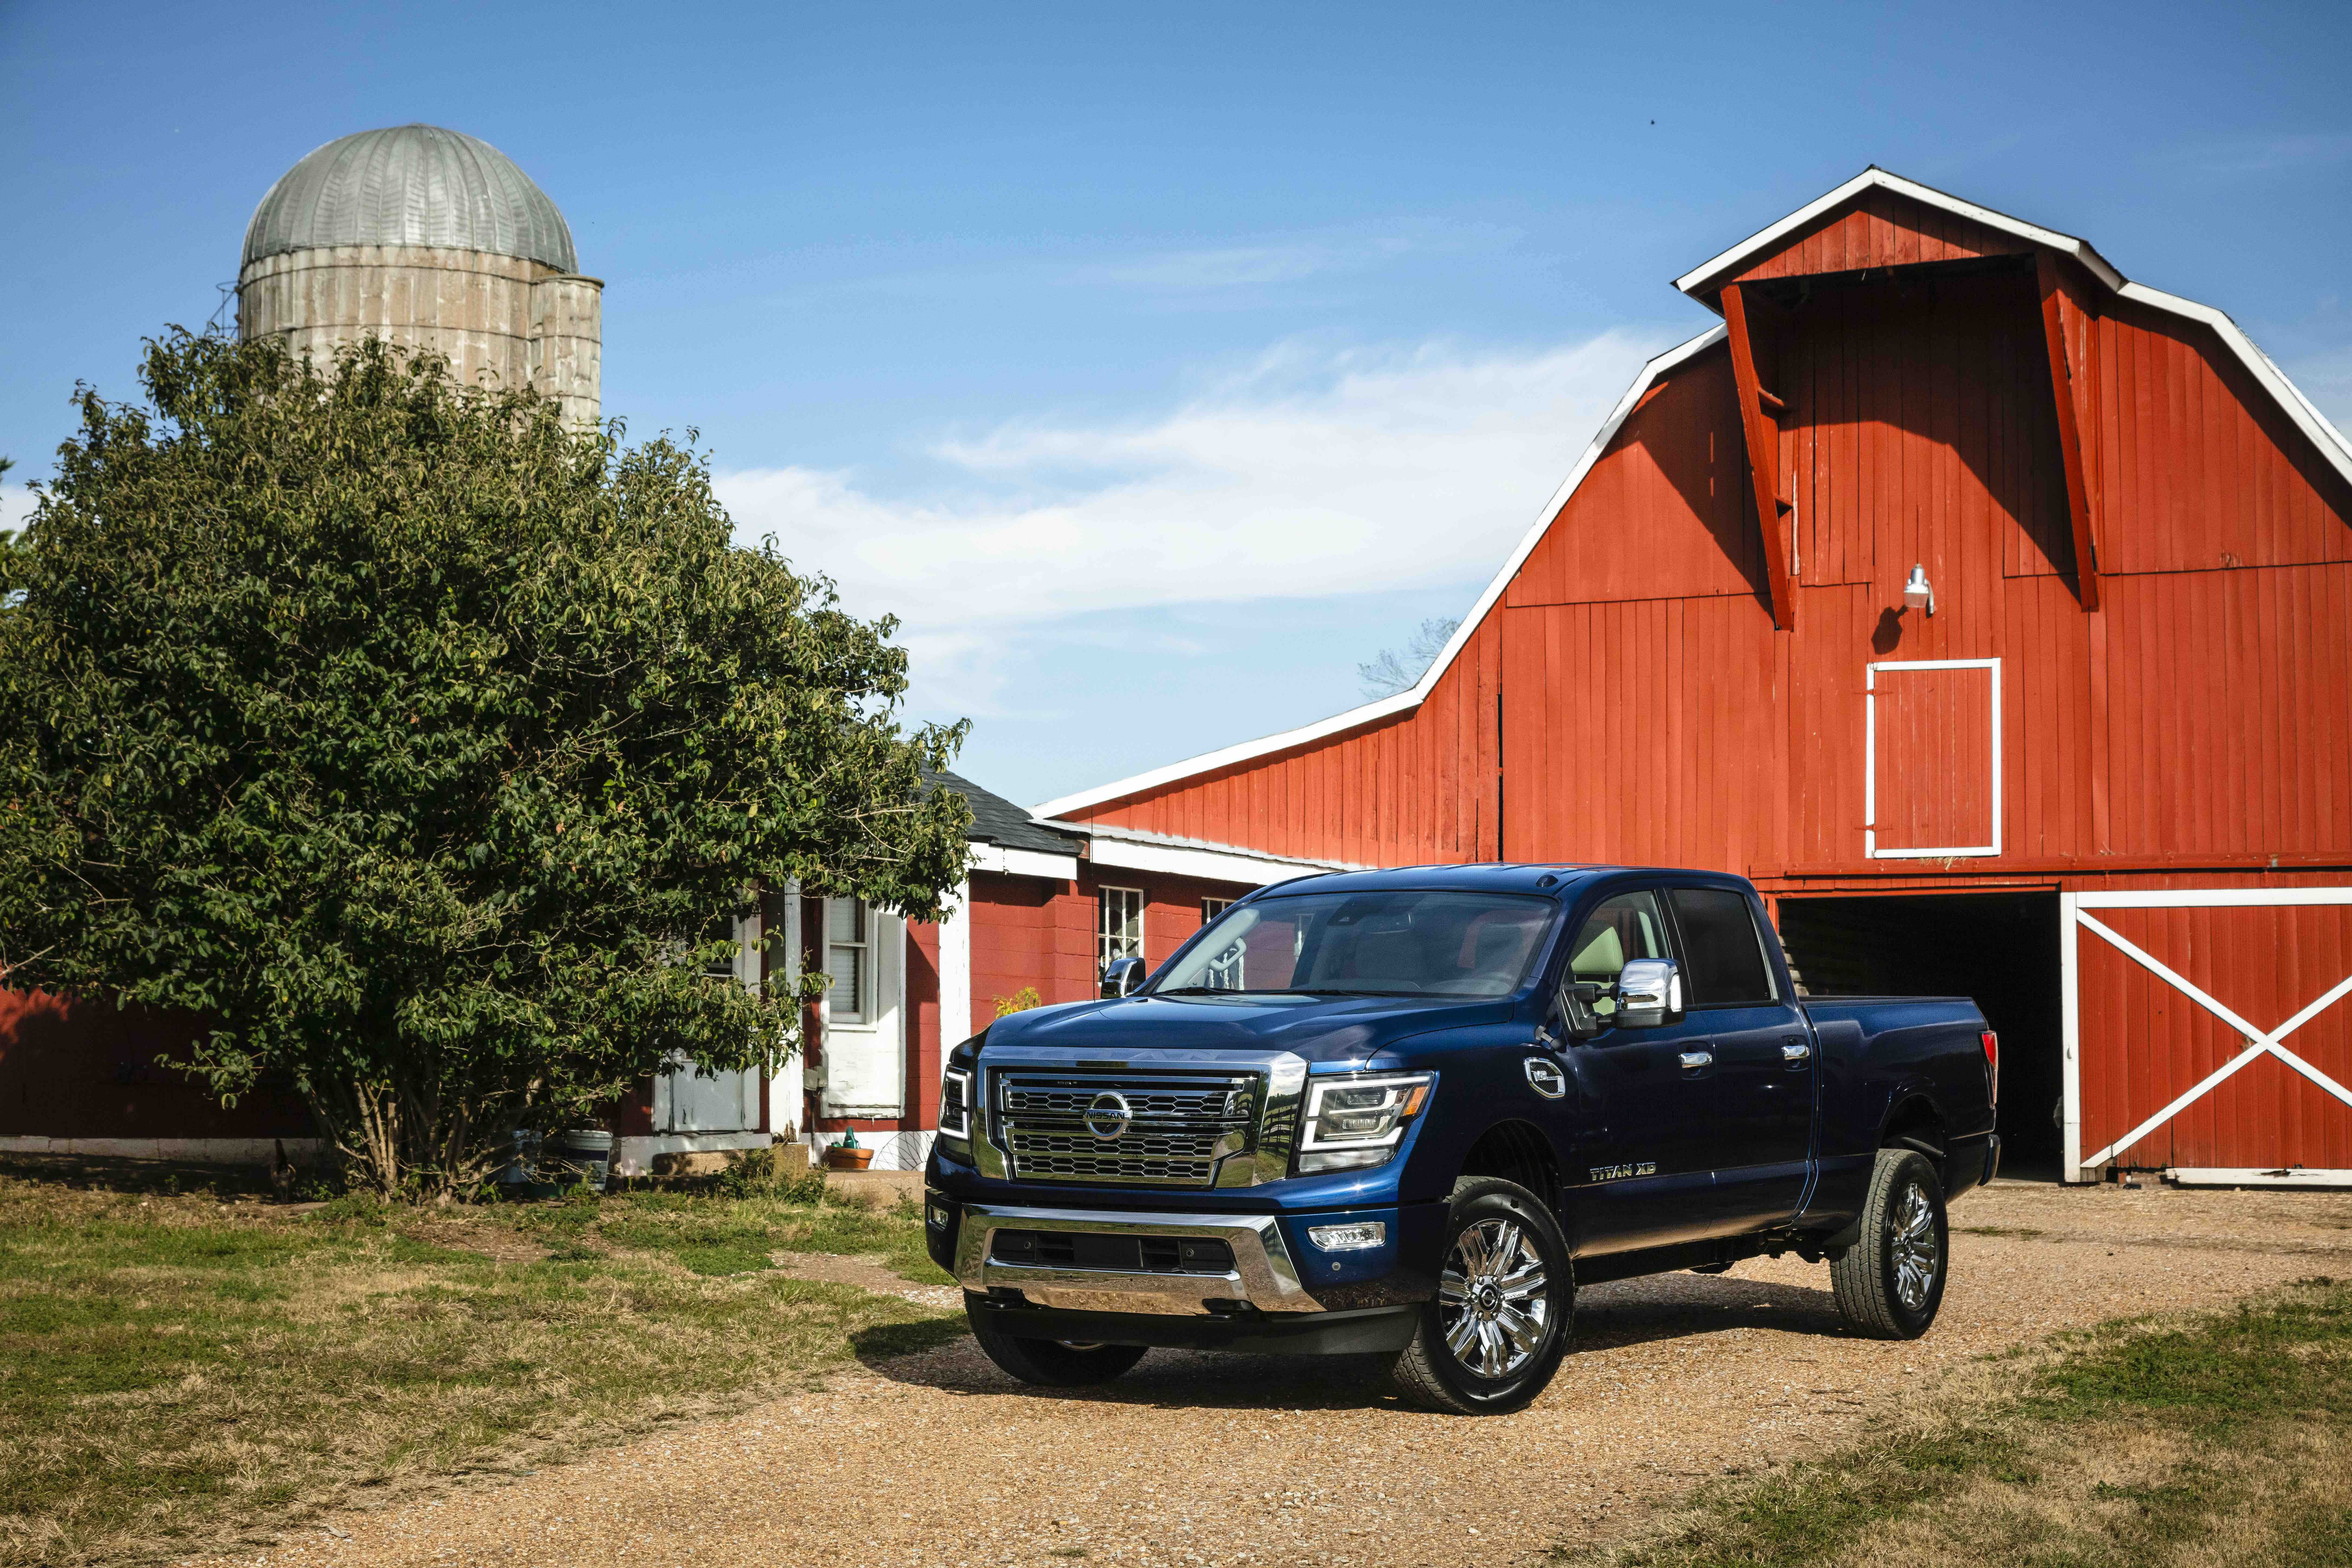 The Titan Xd Is Three Inches Taller Than The Regular Titan 14 6 Inches Longer Overall And Rides On A 11 8 Inch Lon Nissan Titan Nissan Titan Xd Nissan Trucks